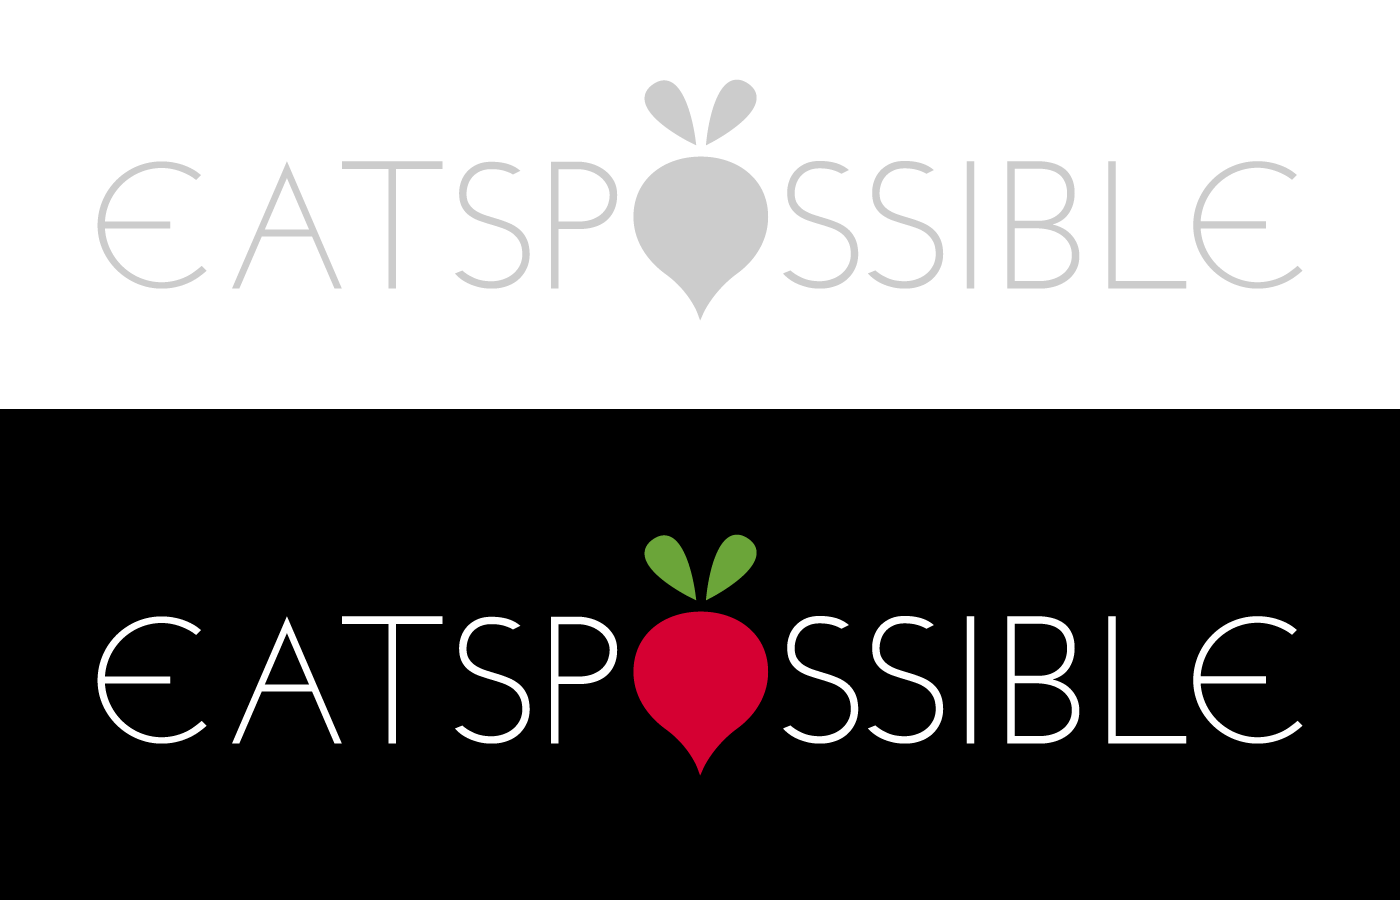 eatspossible final logo